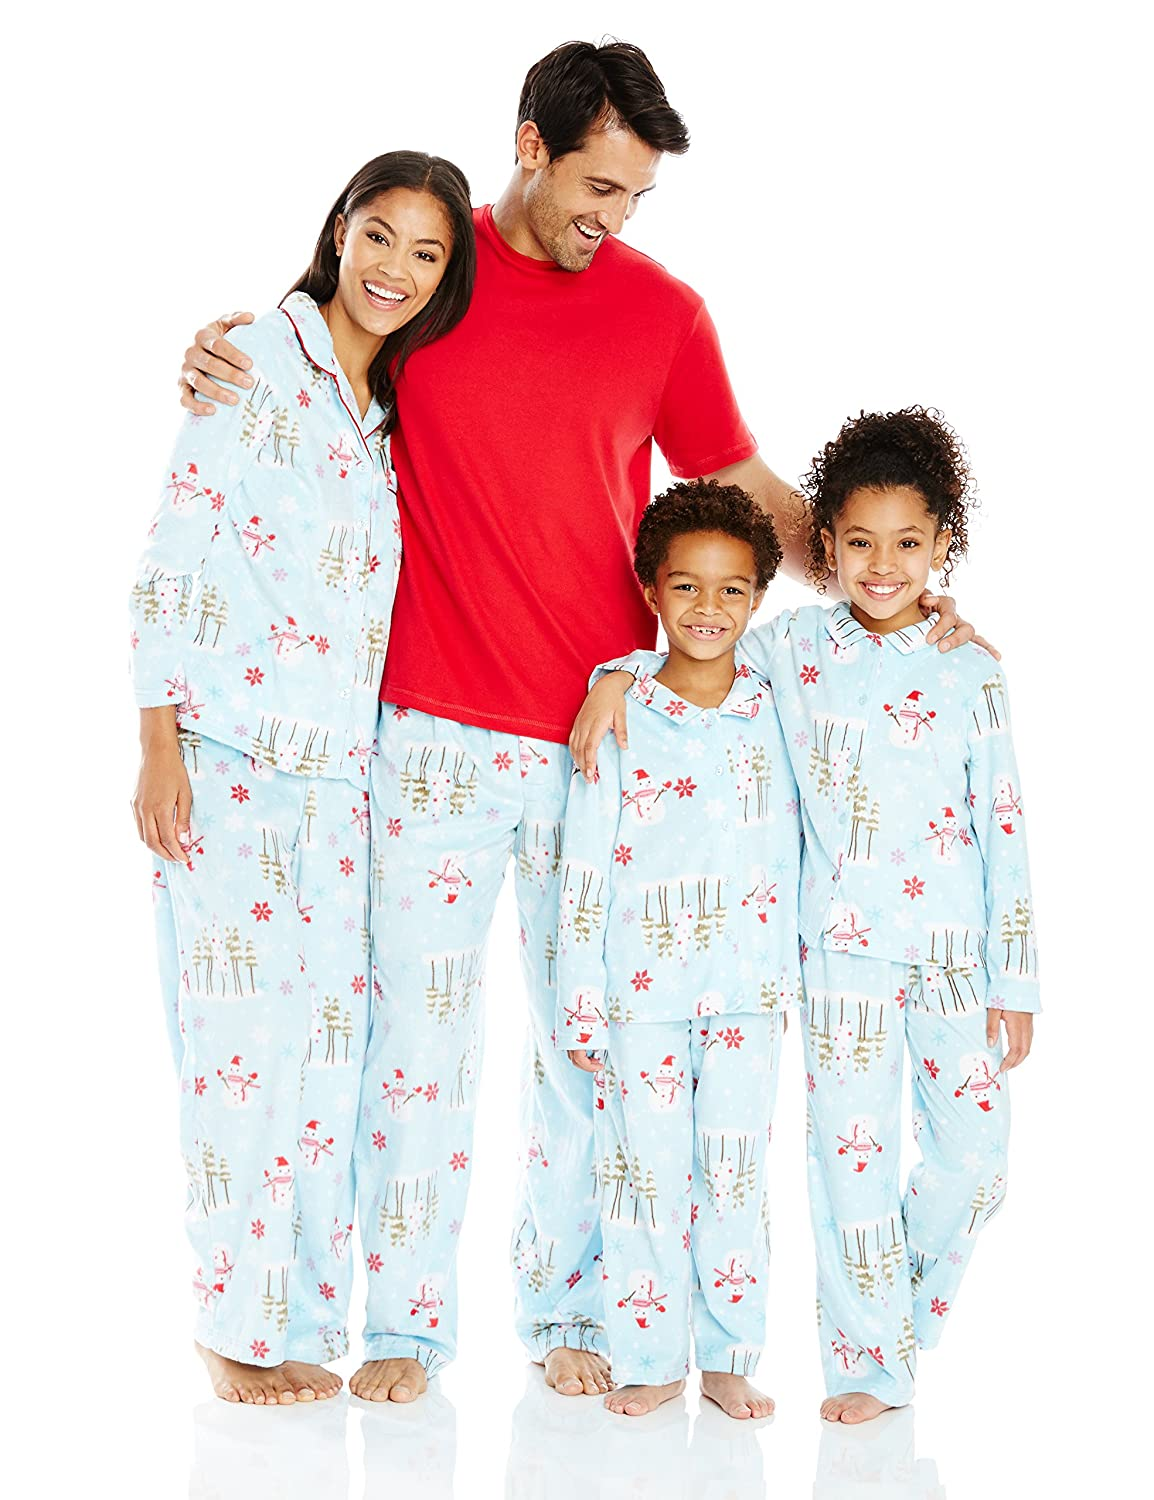 Karen Neuburger Family Minky Fleece Snowman Holiday Matching Pj Set Karen Neuburger Women' s Sleepwear RF0034N